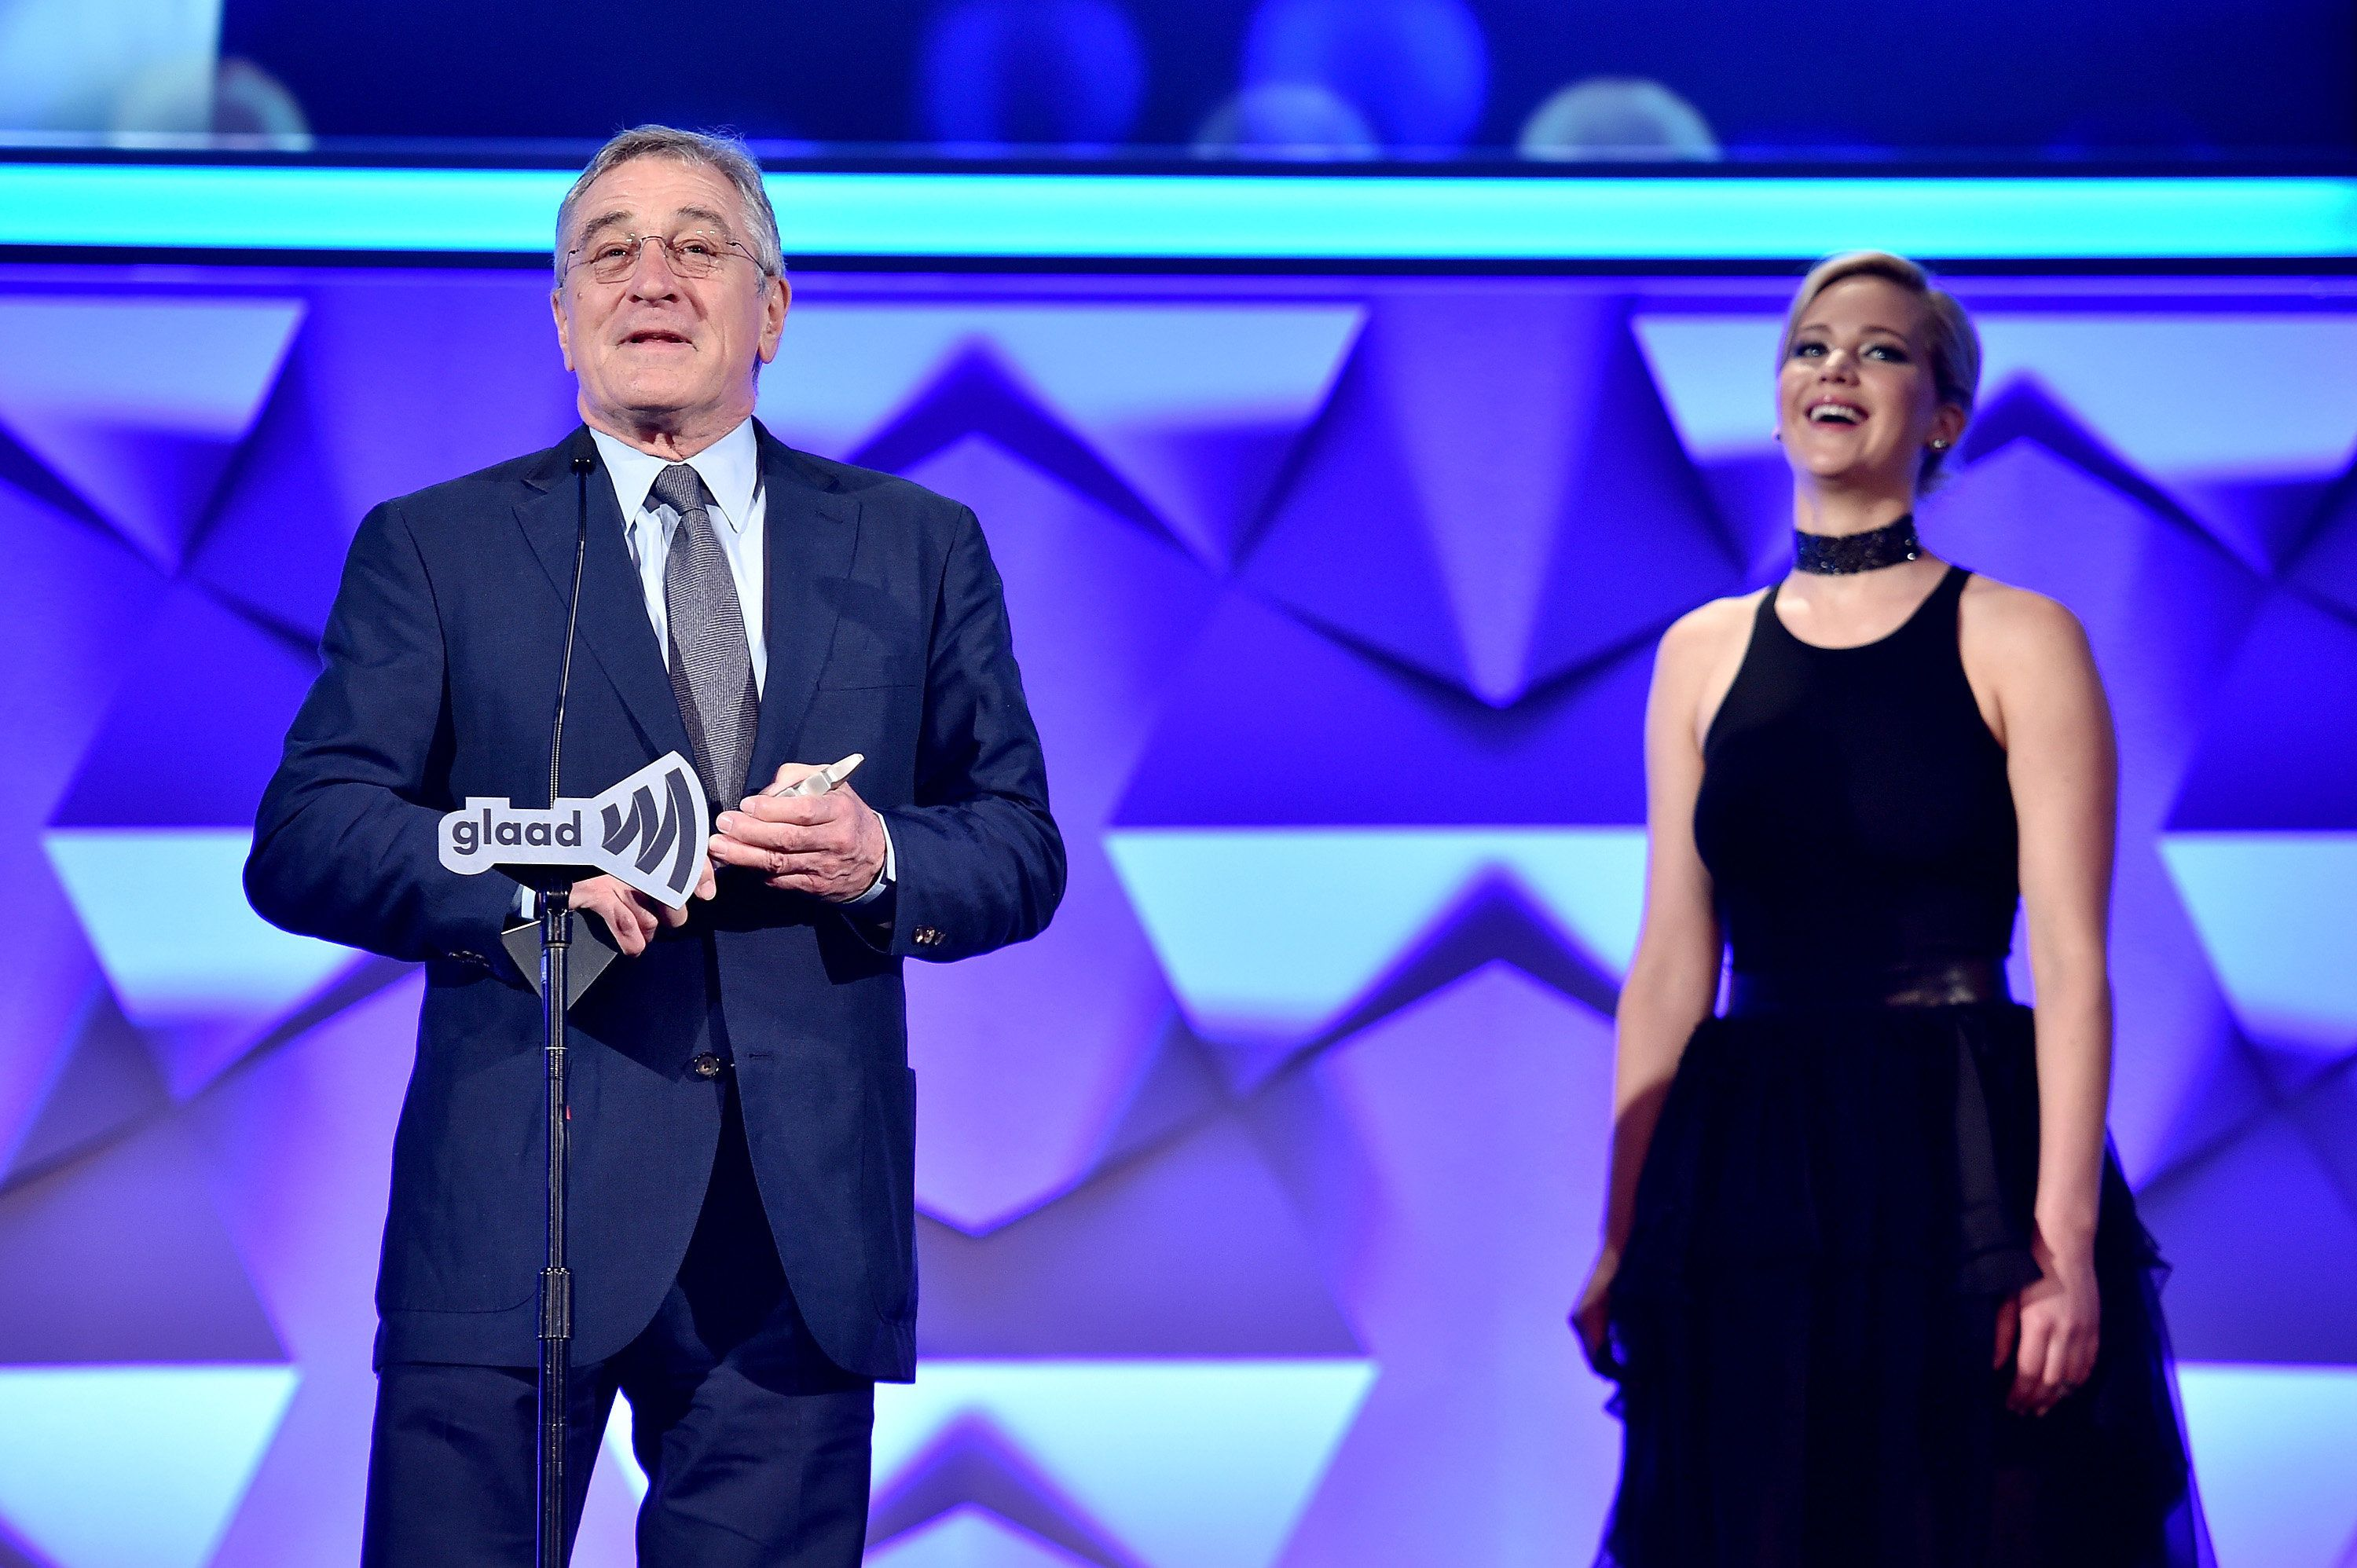 Robert De Niro and Jennifer Lawrence at the 27th Annual GLAAD Media Awards hosted by Ketel One.